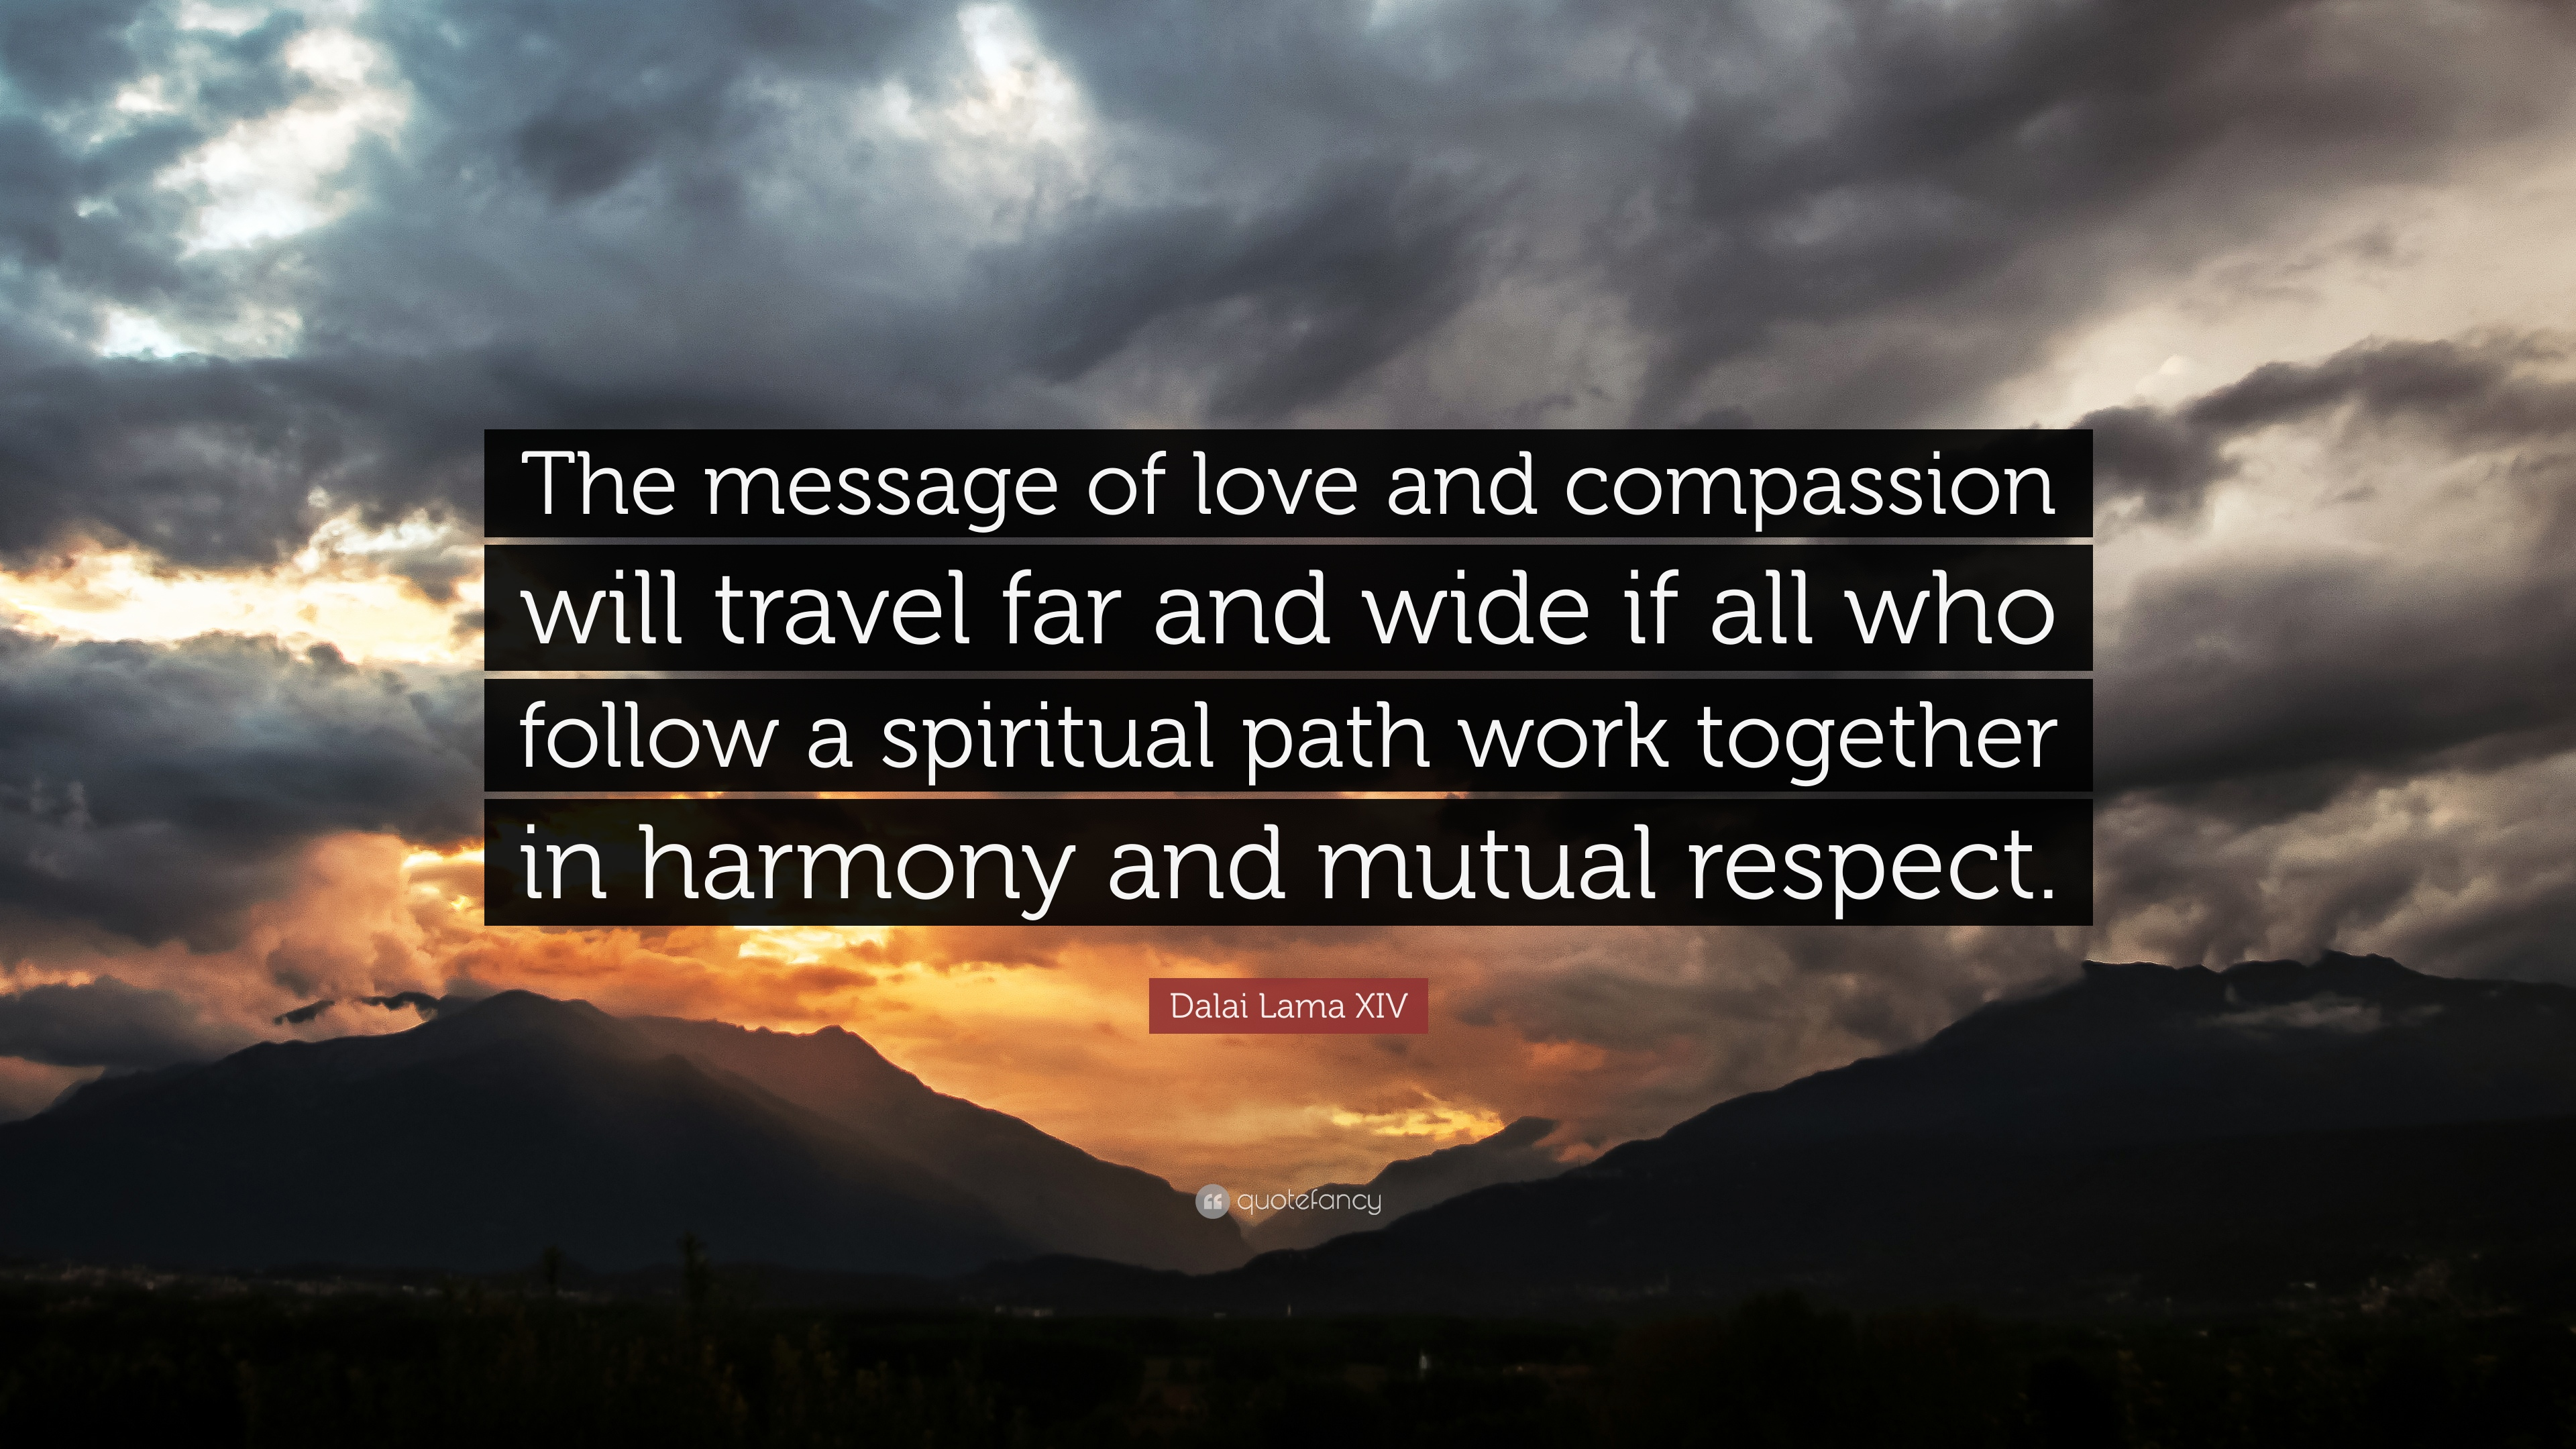 Dalai Lama Xiv Quote The Message Of Love And Compassion Will